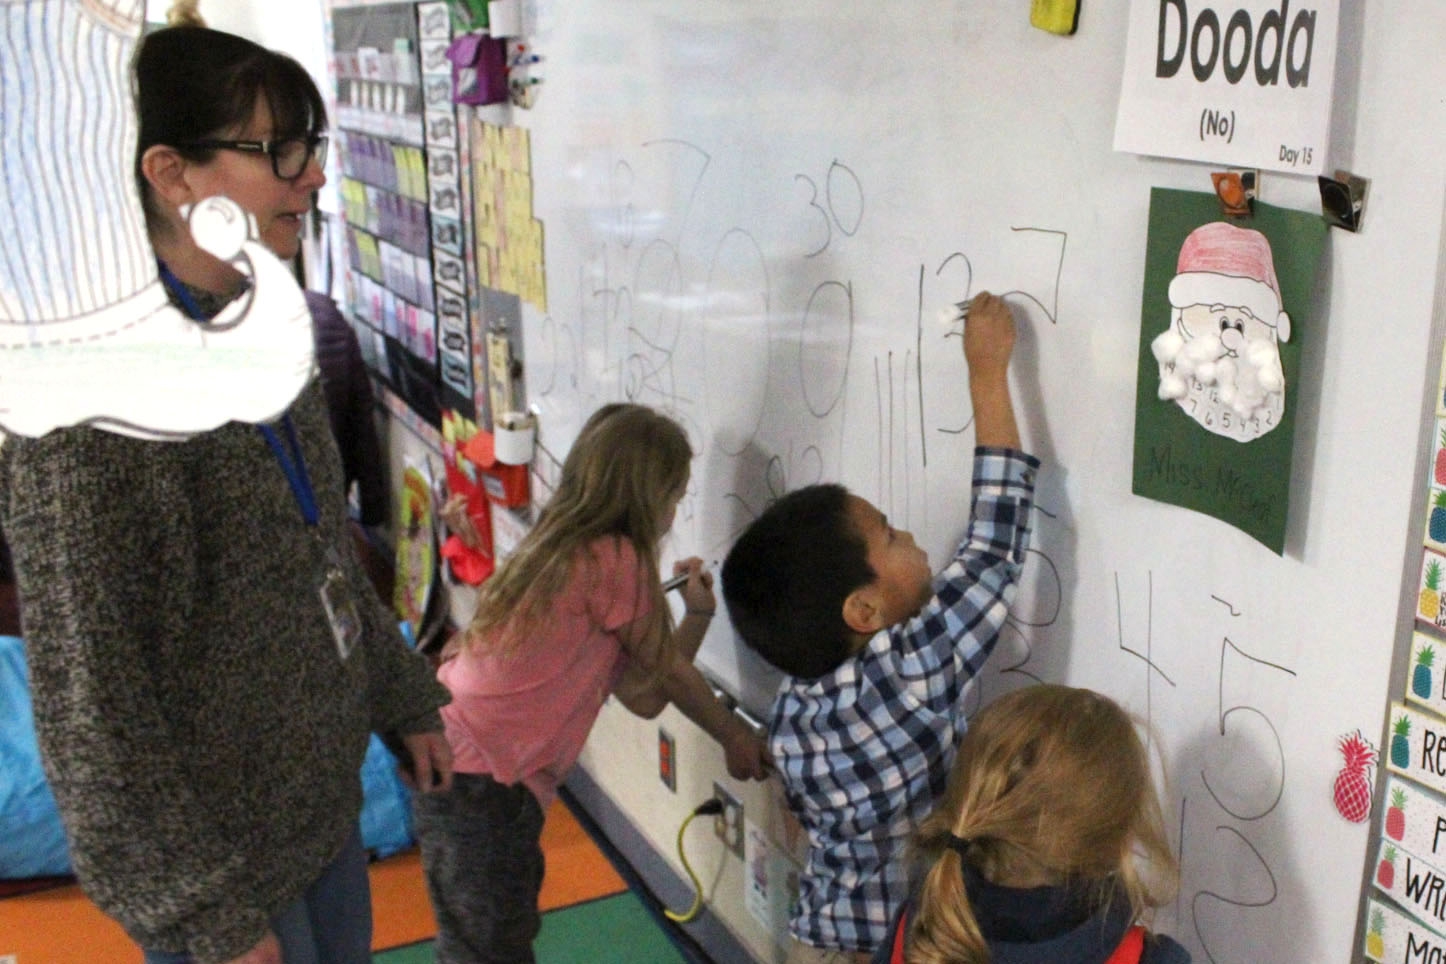 kids with teacher at whiteboard